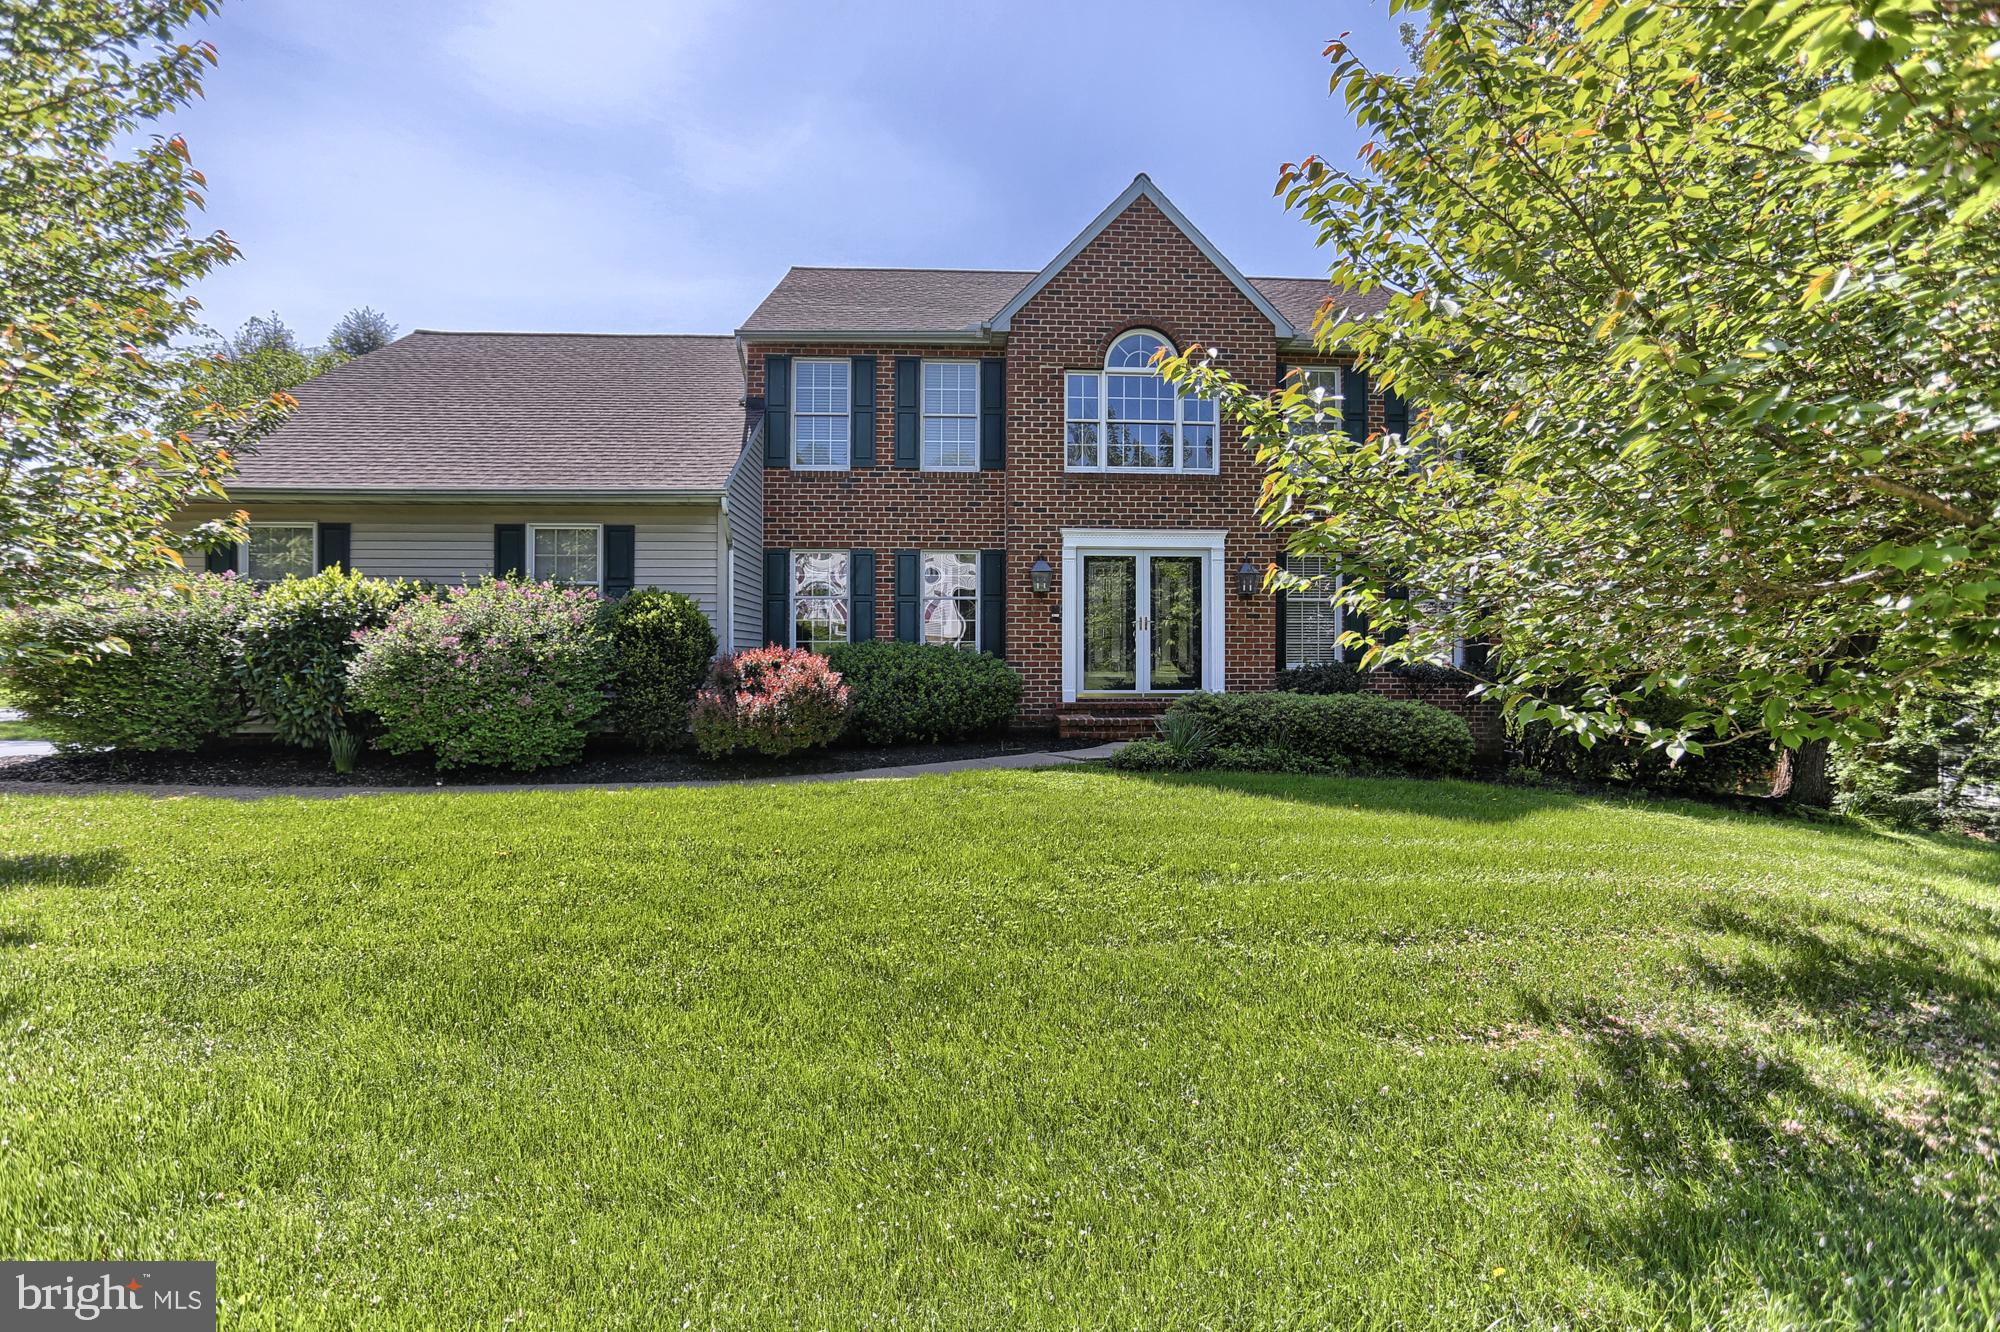 57 STONE RIDGE DRIVE, NEW FREEDOM, PA 17349